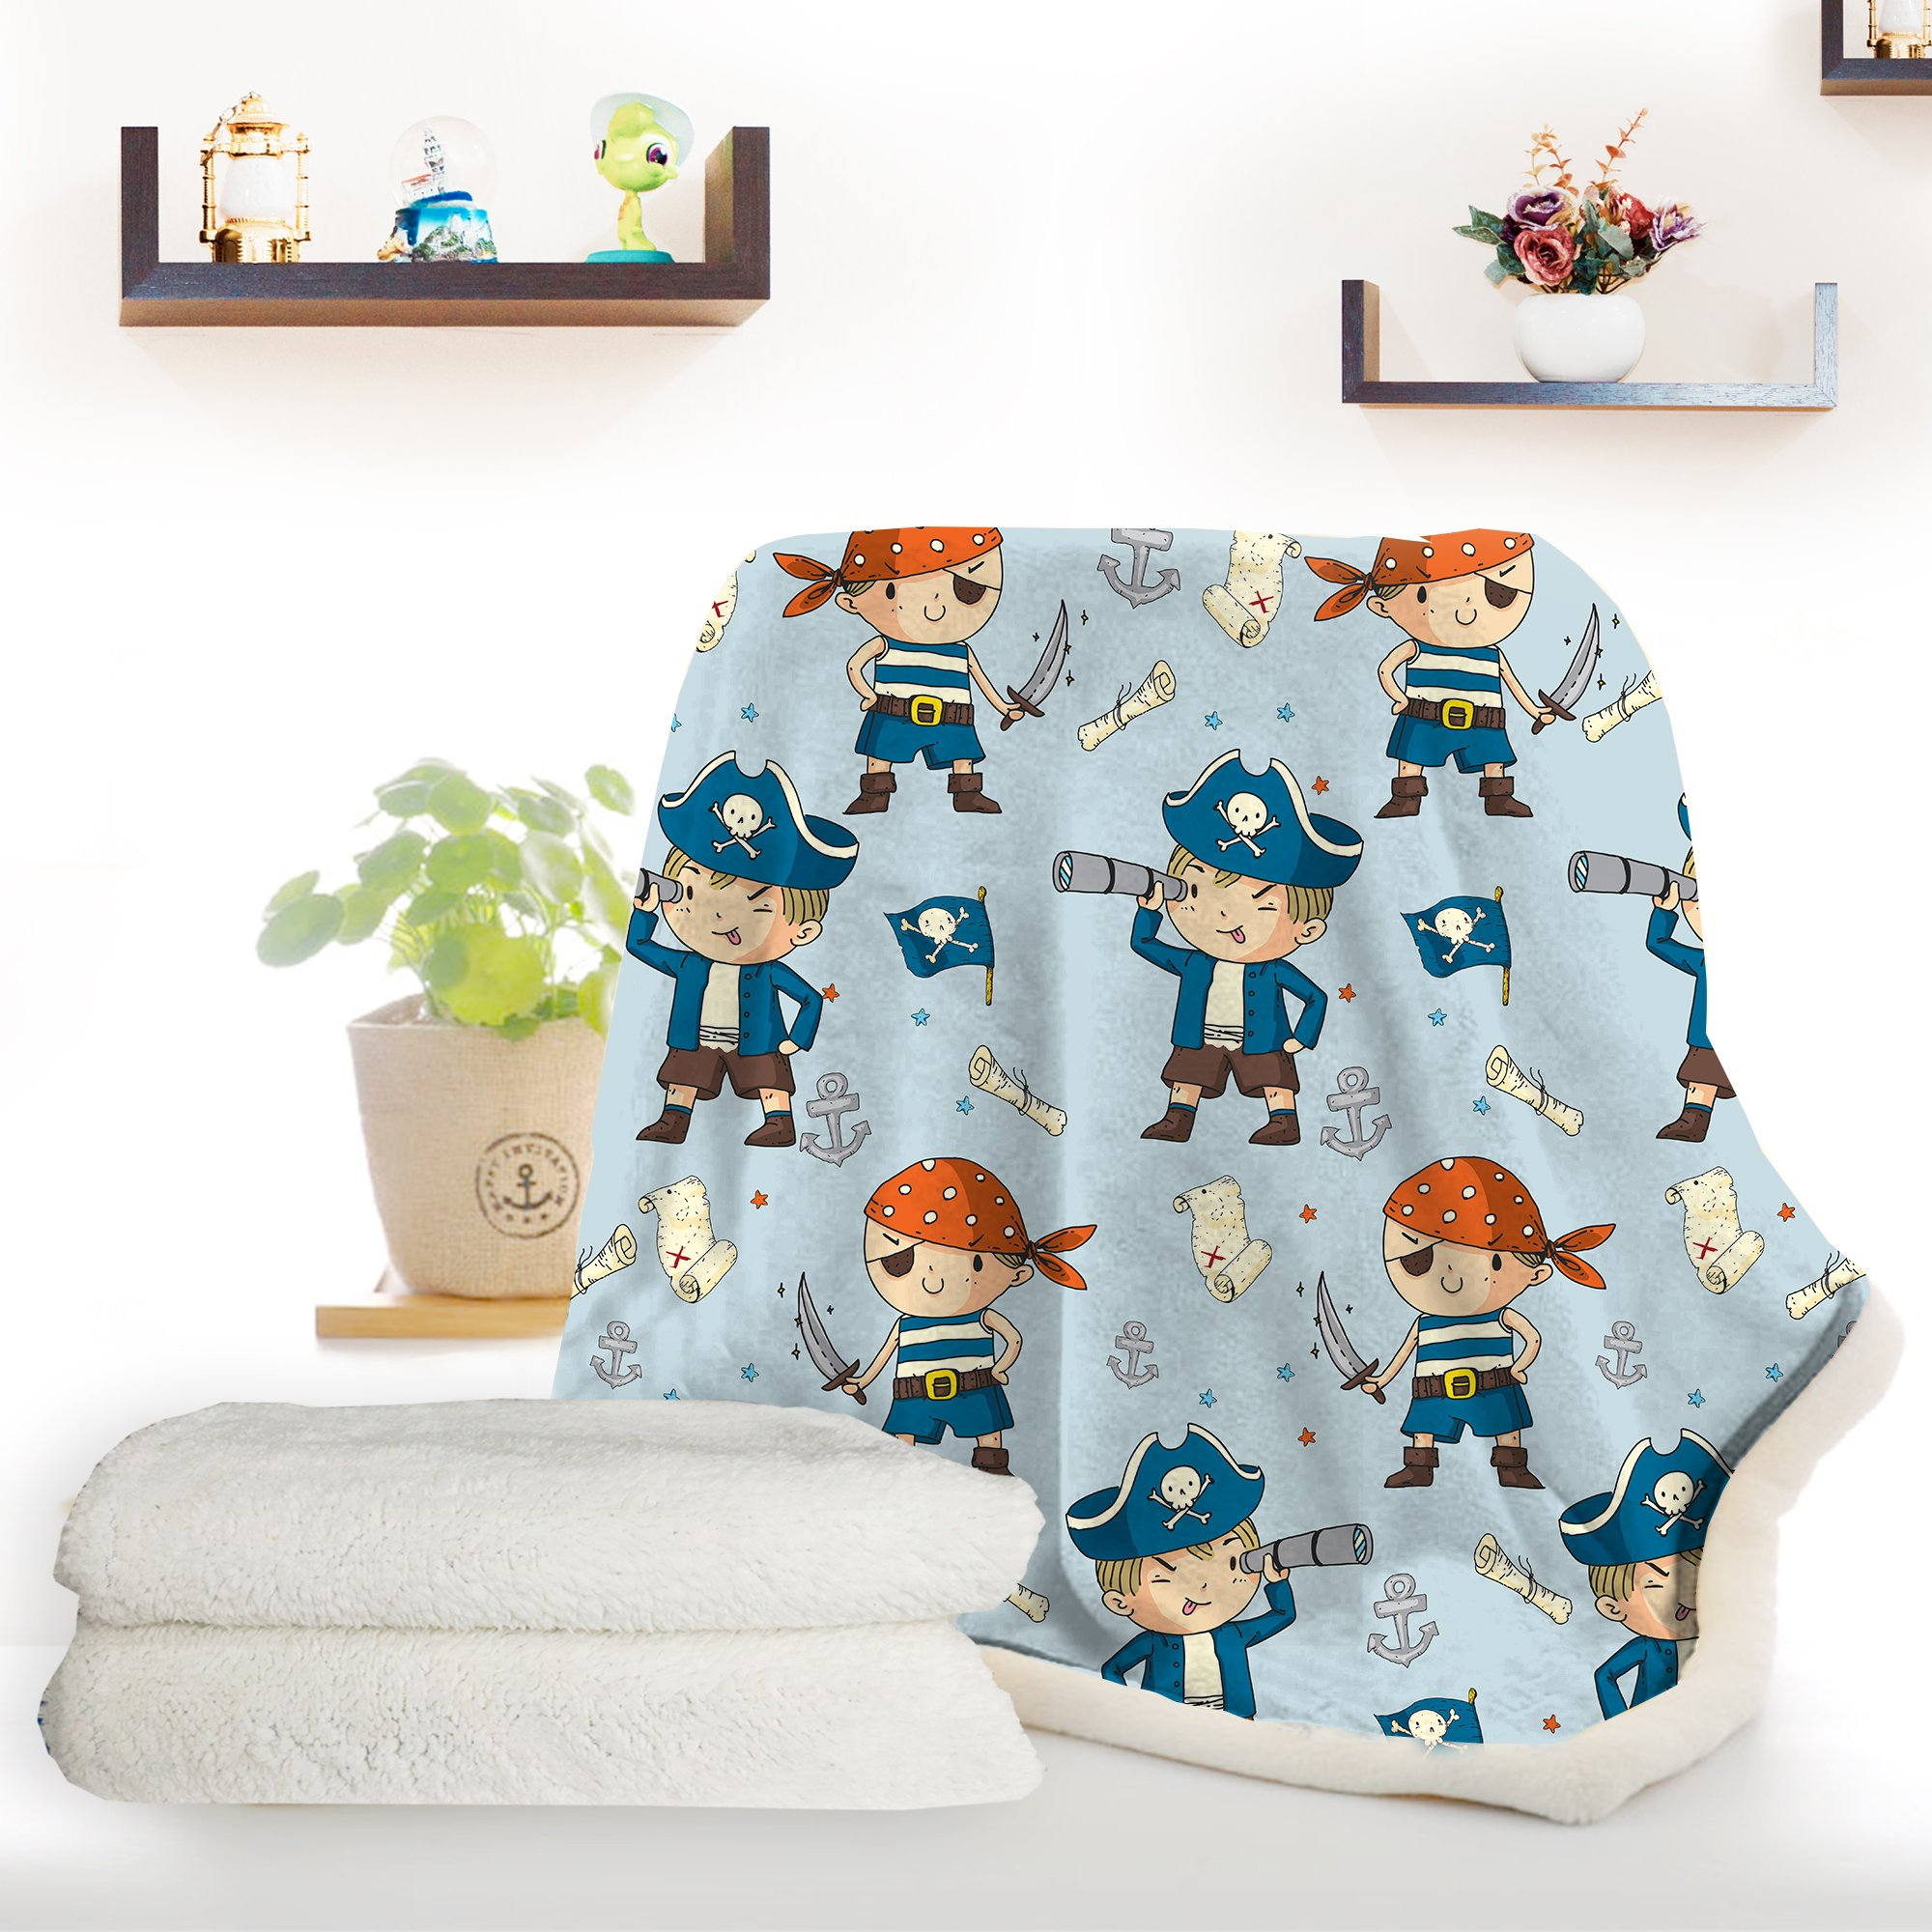 ARIGHTEX Pirate Boy Blanket Nautical Themed Sherpa Fleece Blanket Ultra Soft Blue and Orange Pirates Teens college dorm throw blanket (50 x 60 Inches) by ARIGHTEX (Image #1)